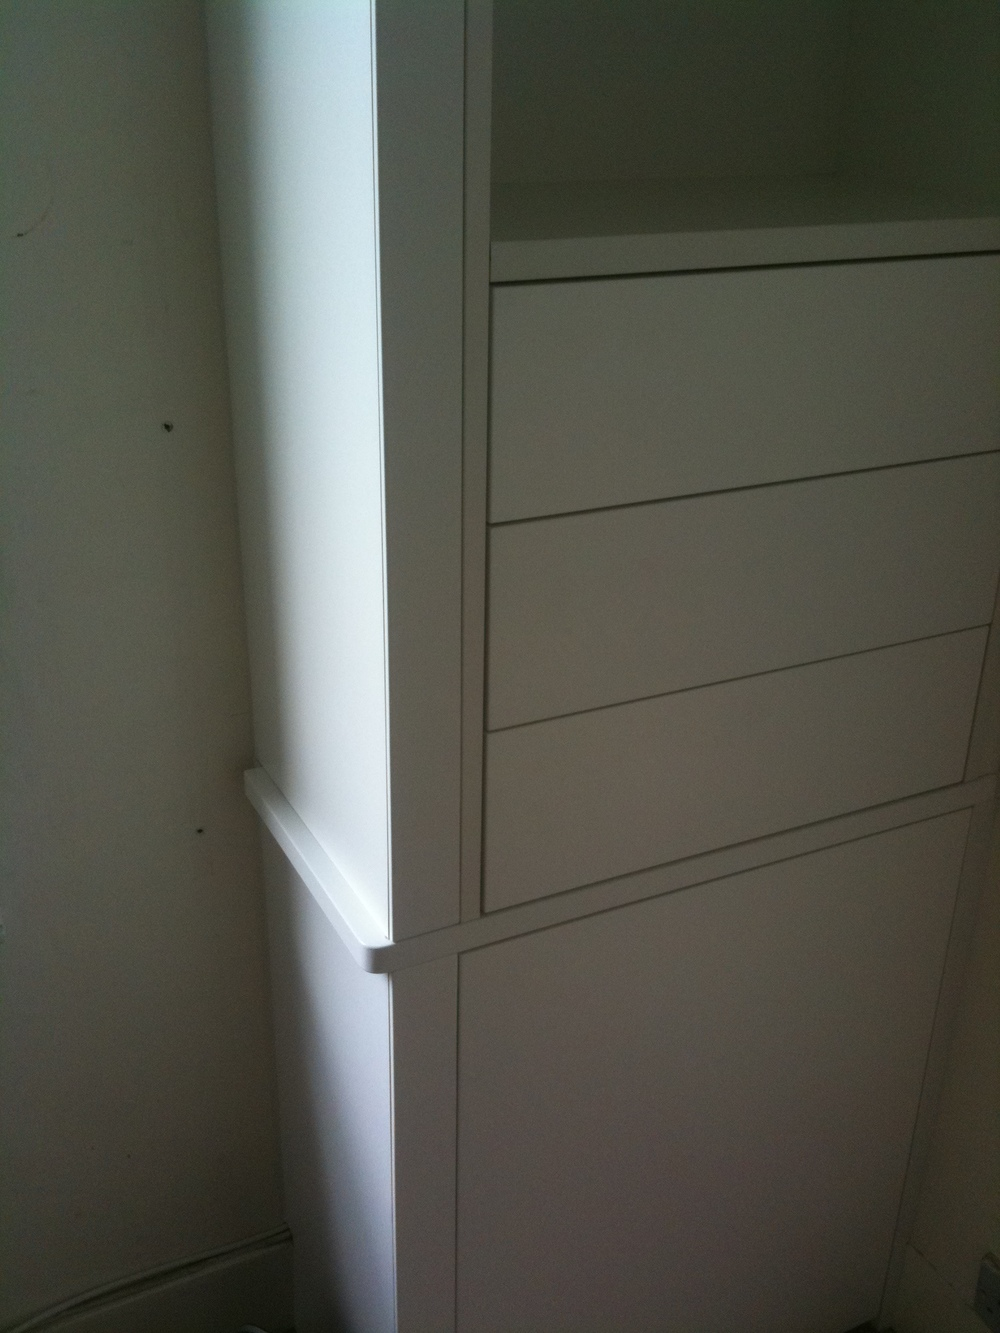 Discreet set of drawers